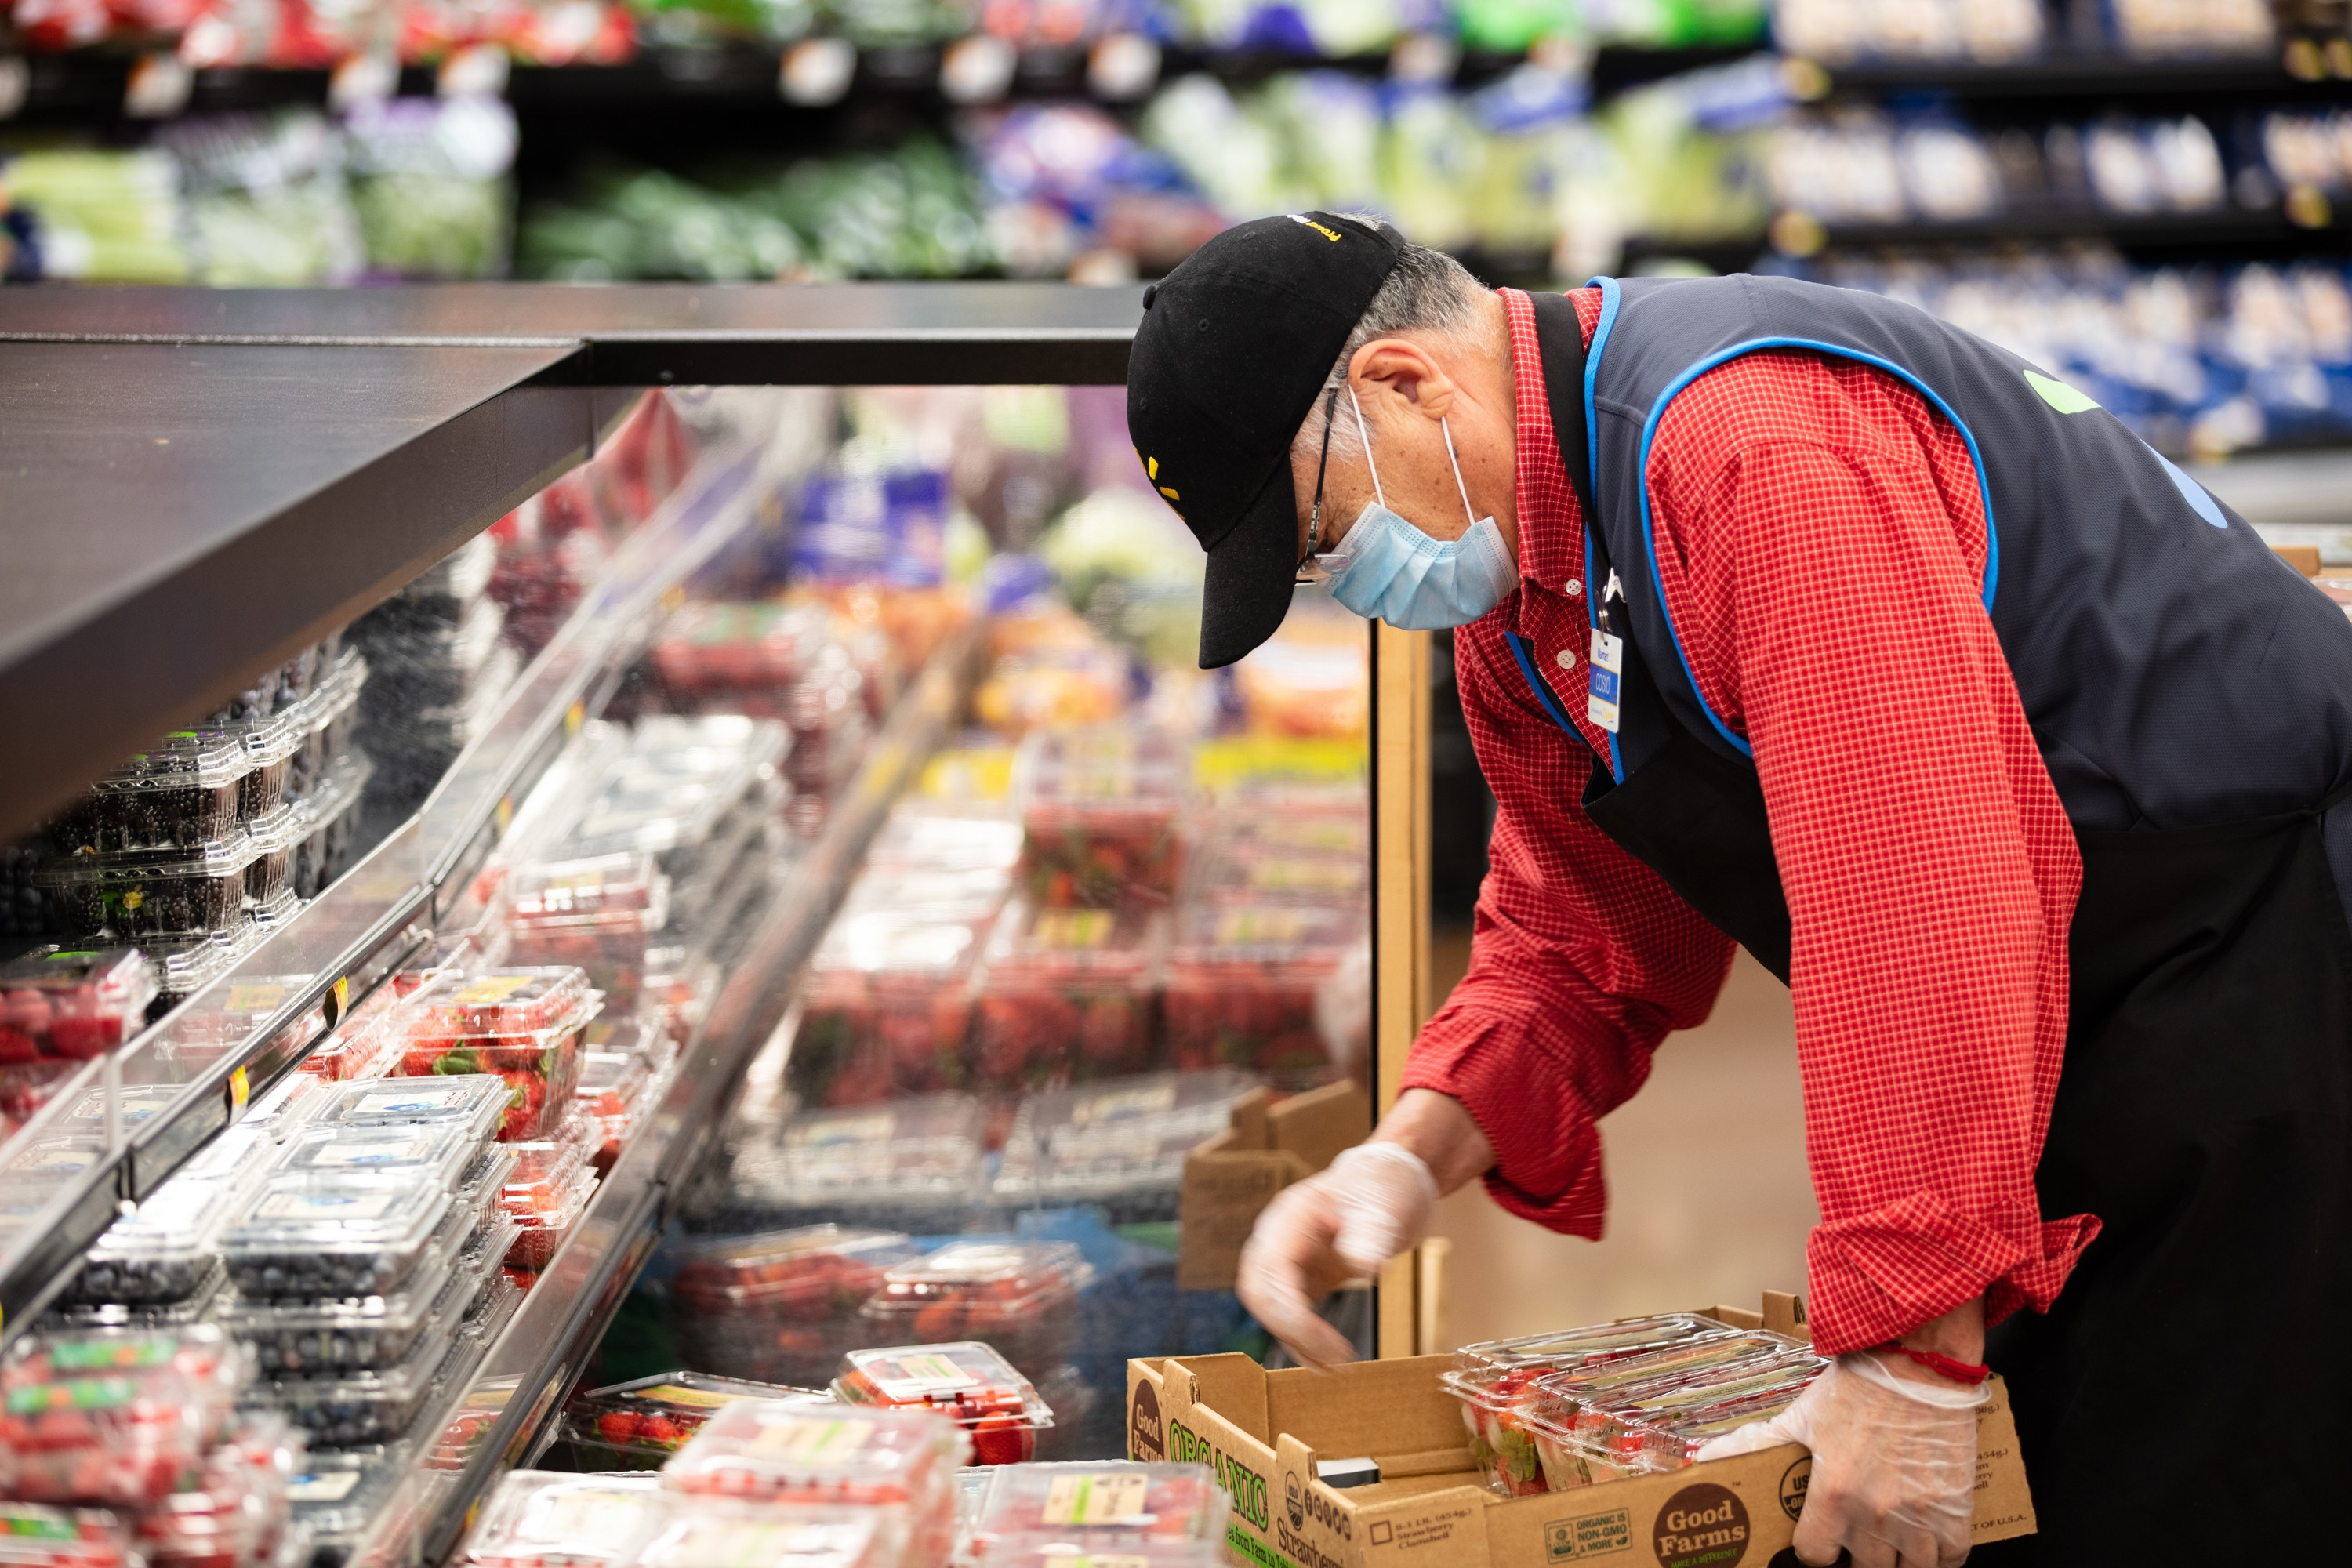 An associate wears a mask while stocking strawberries